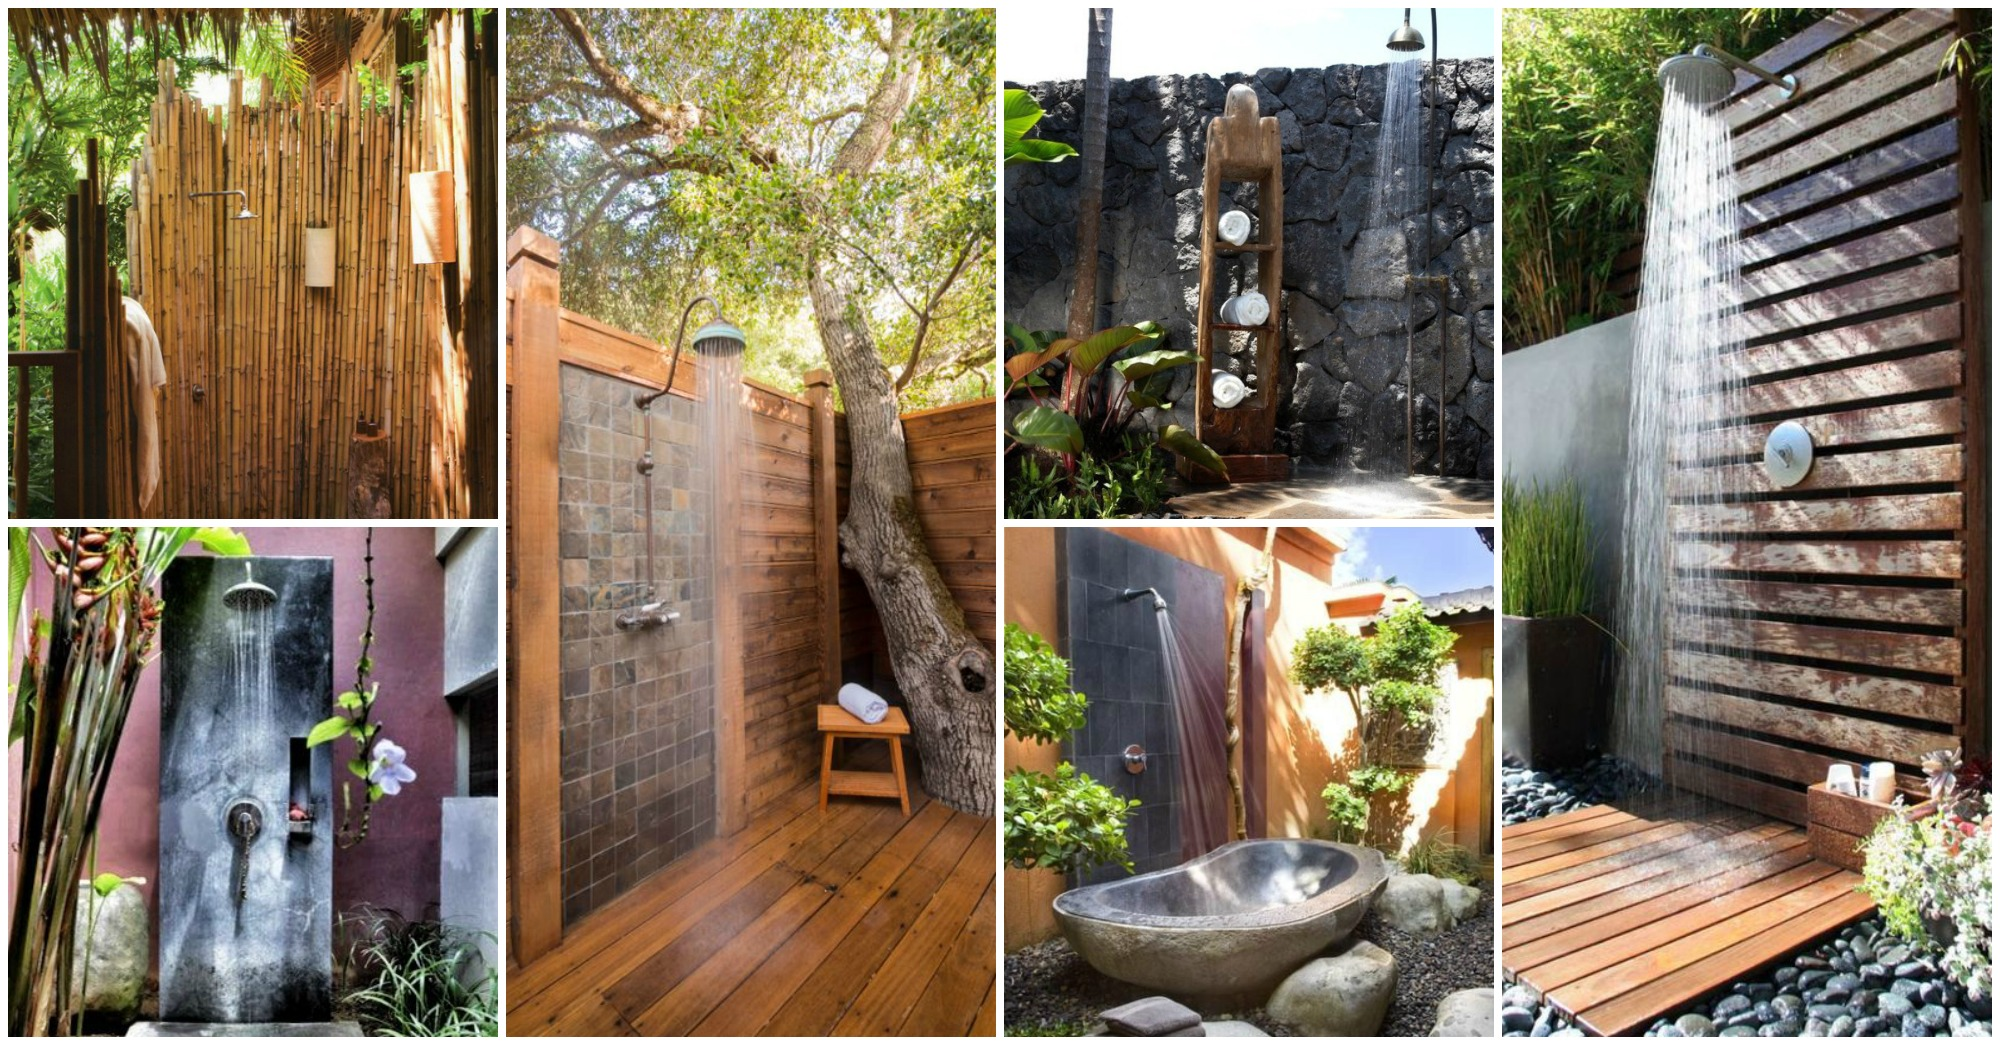 Outdoor Shower Tumblr 20 43 Outdoor Shower Ideas That Will Wake Up All Of Your Senses